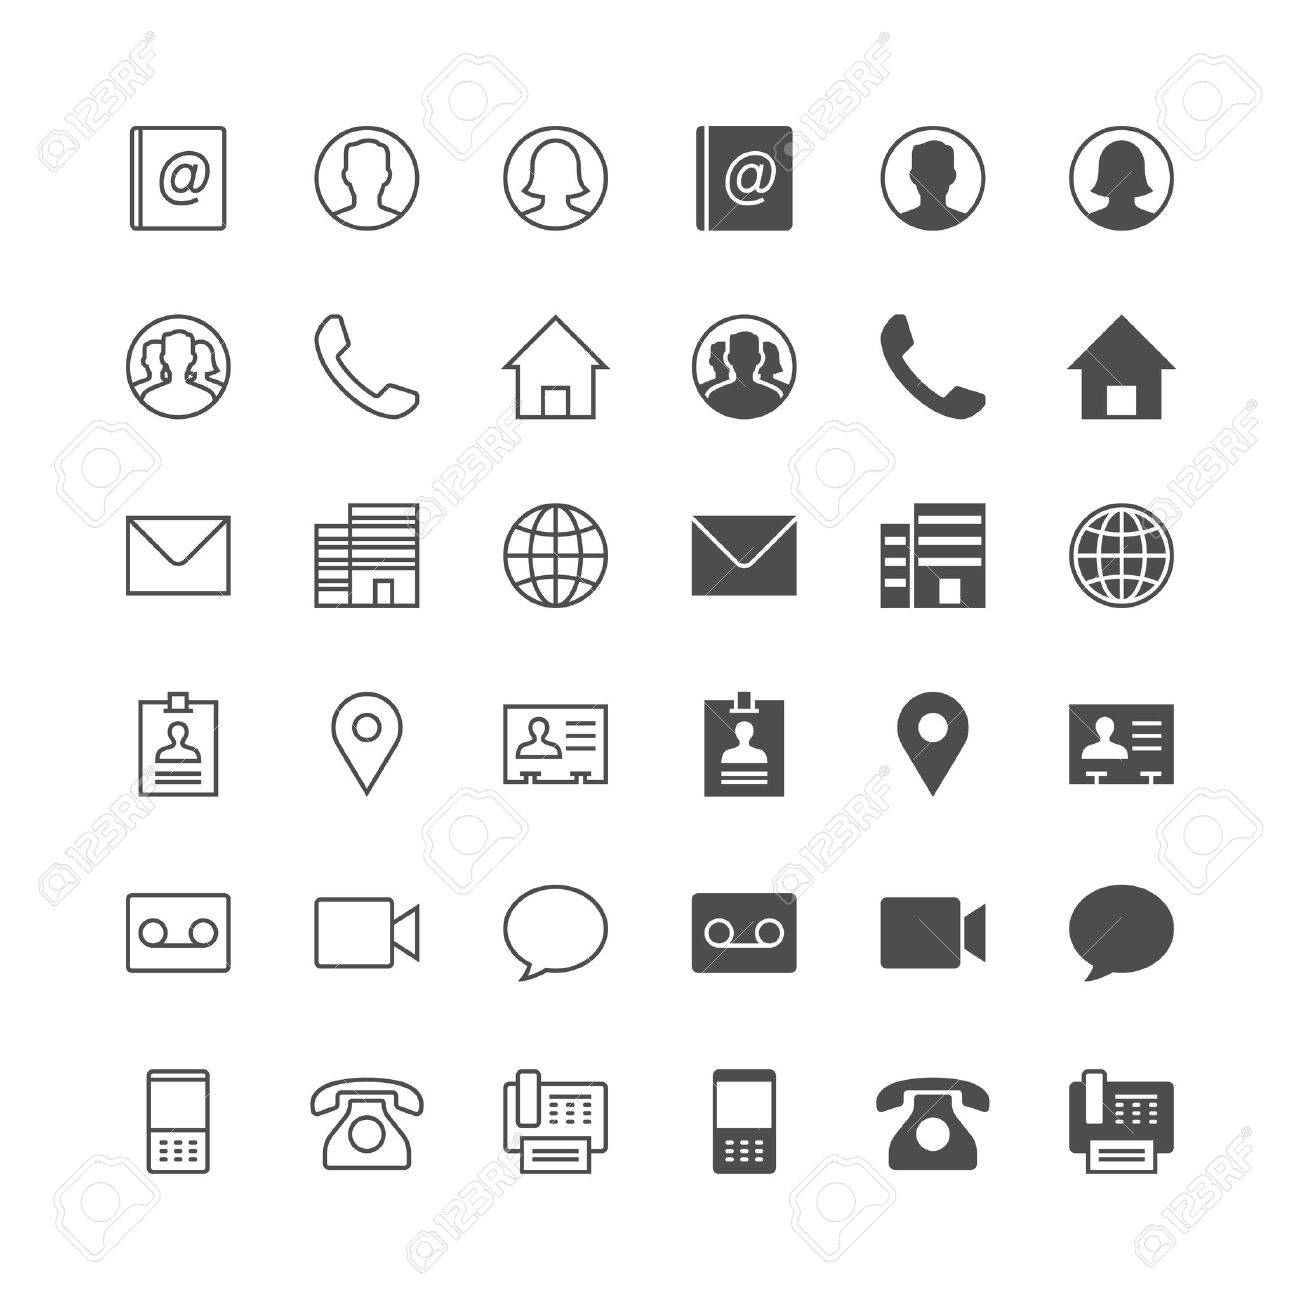 Contact icons, included normal and enable state. - 54324547